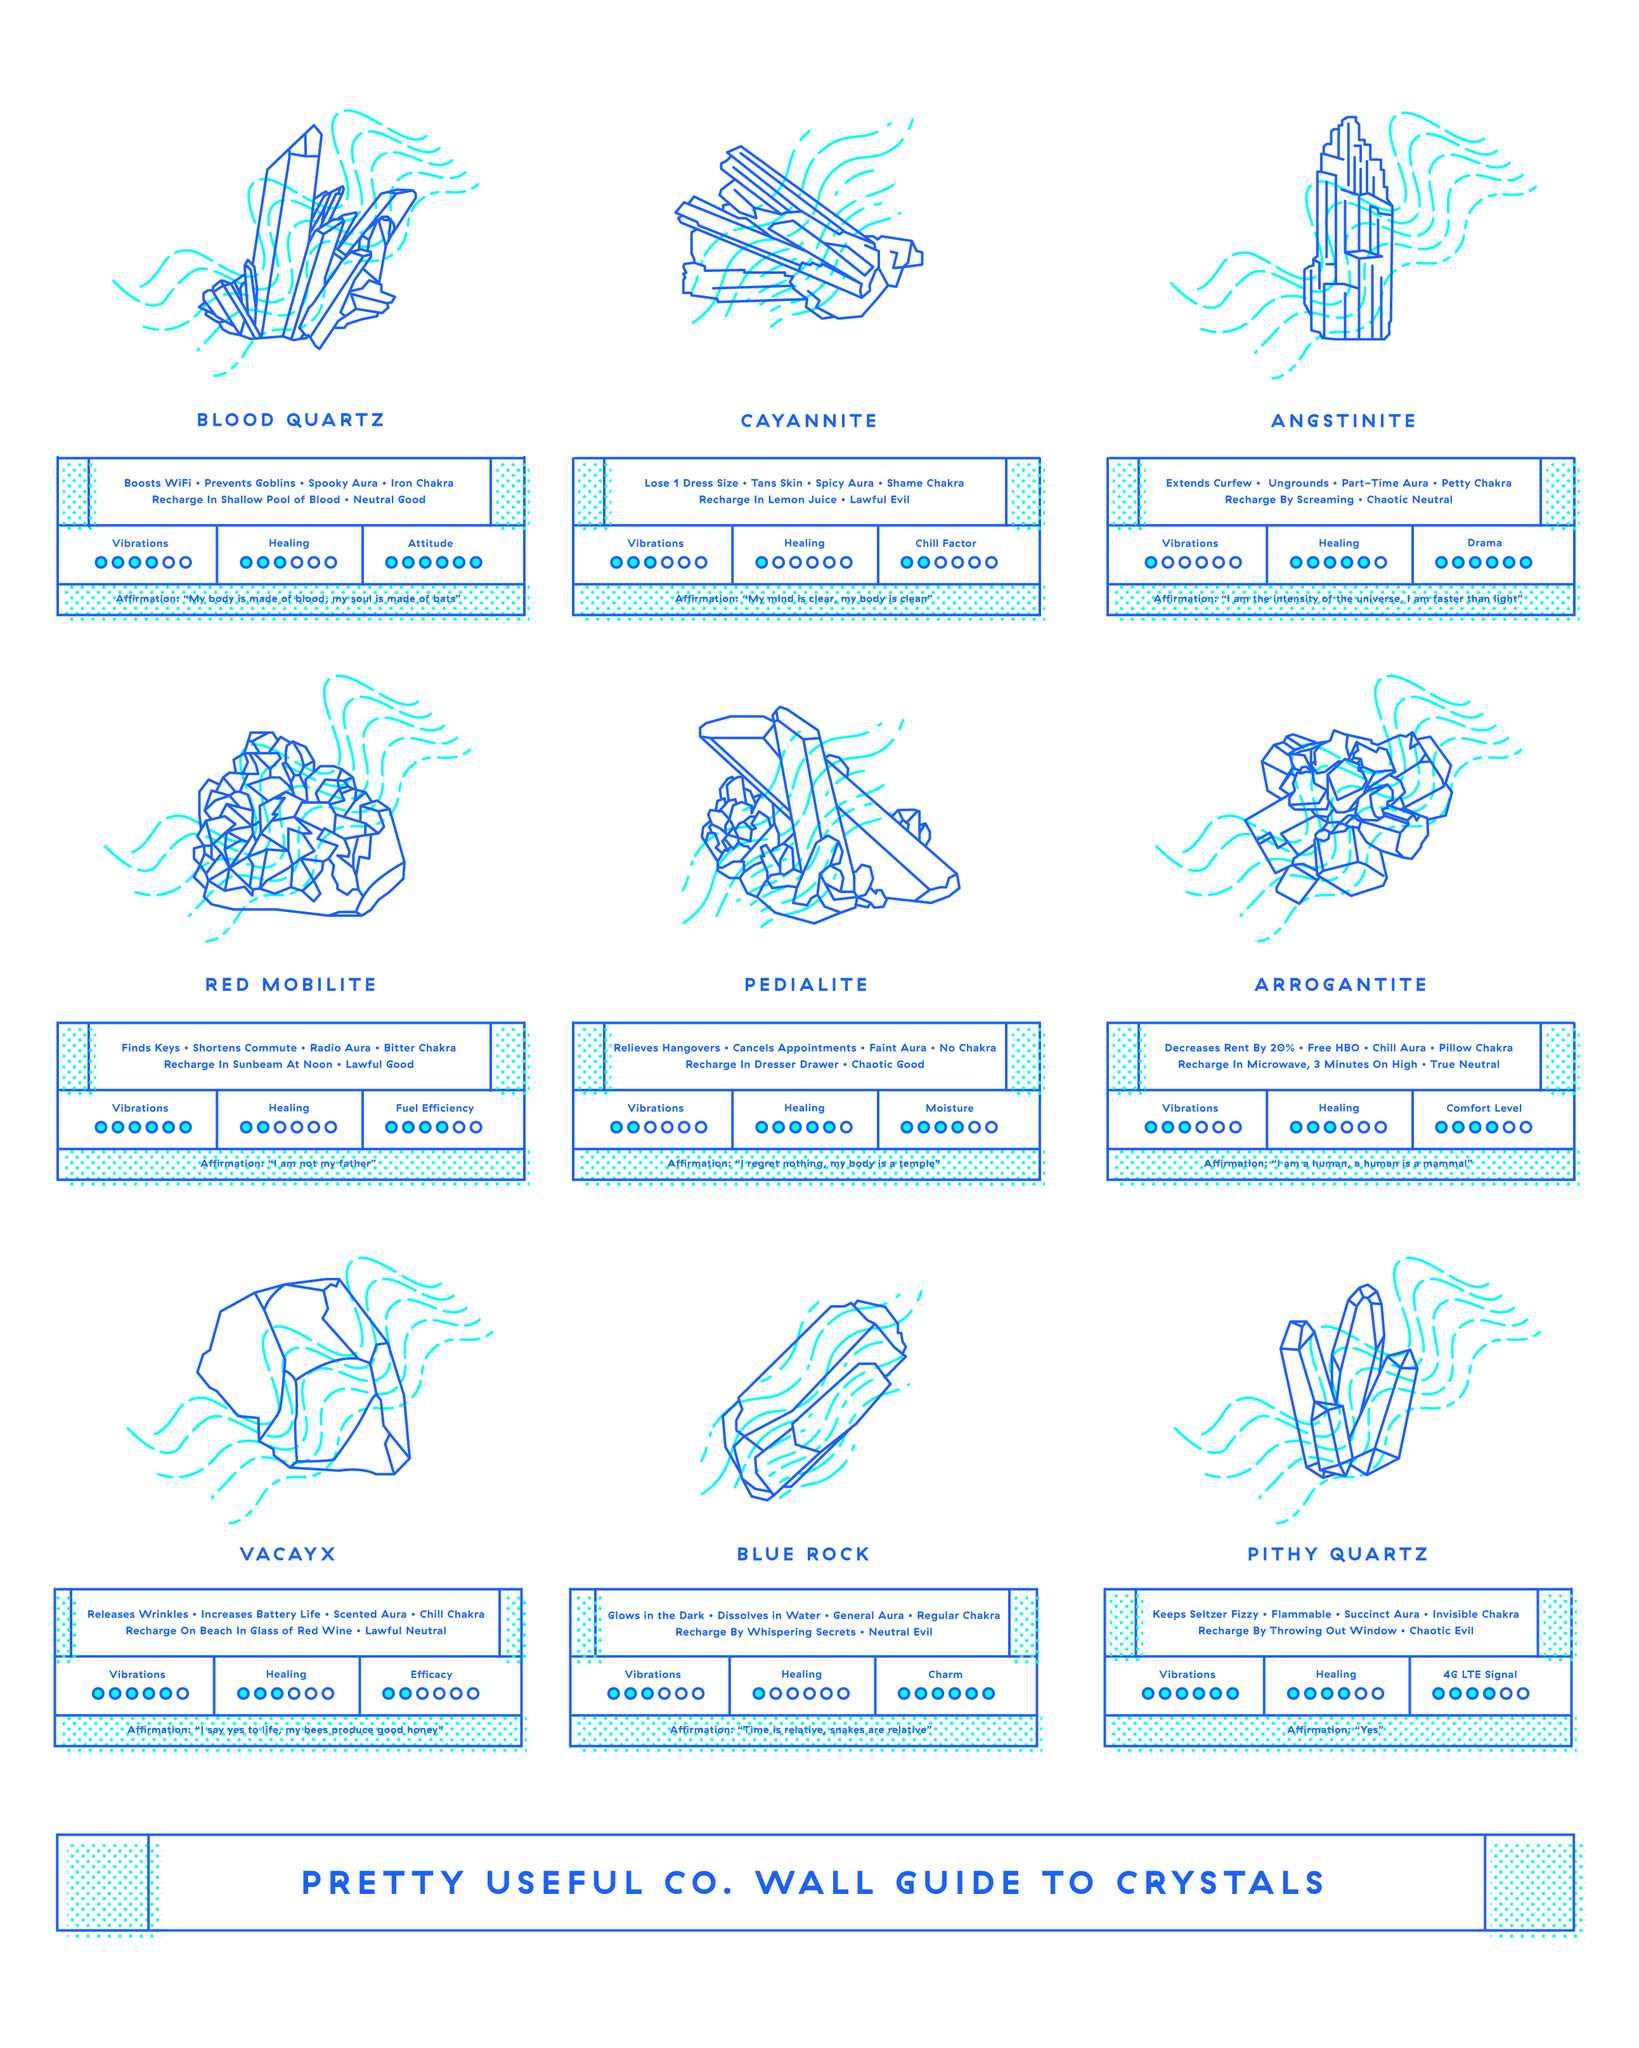 The Pretty Useful Wall Guide to Crystals (16x20) PRE-ORDER